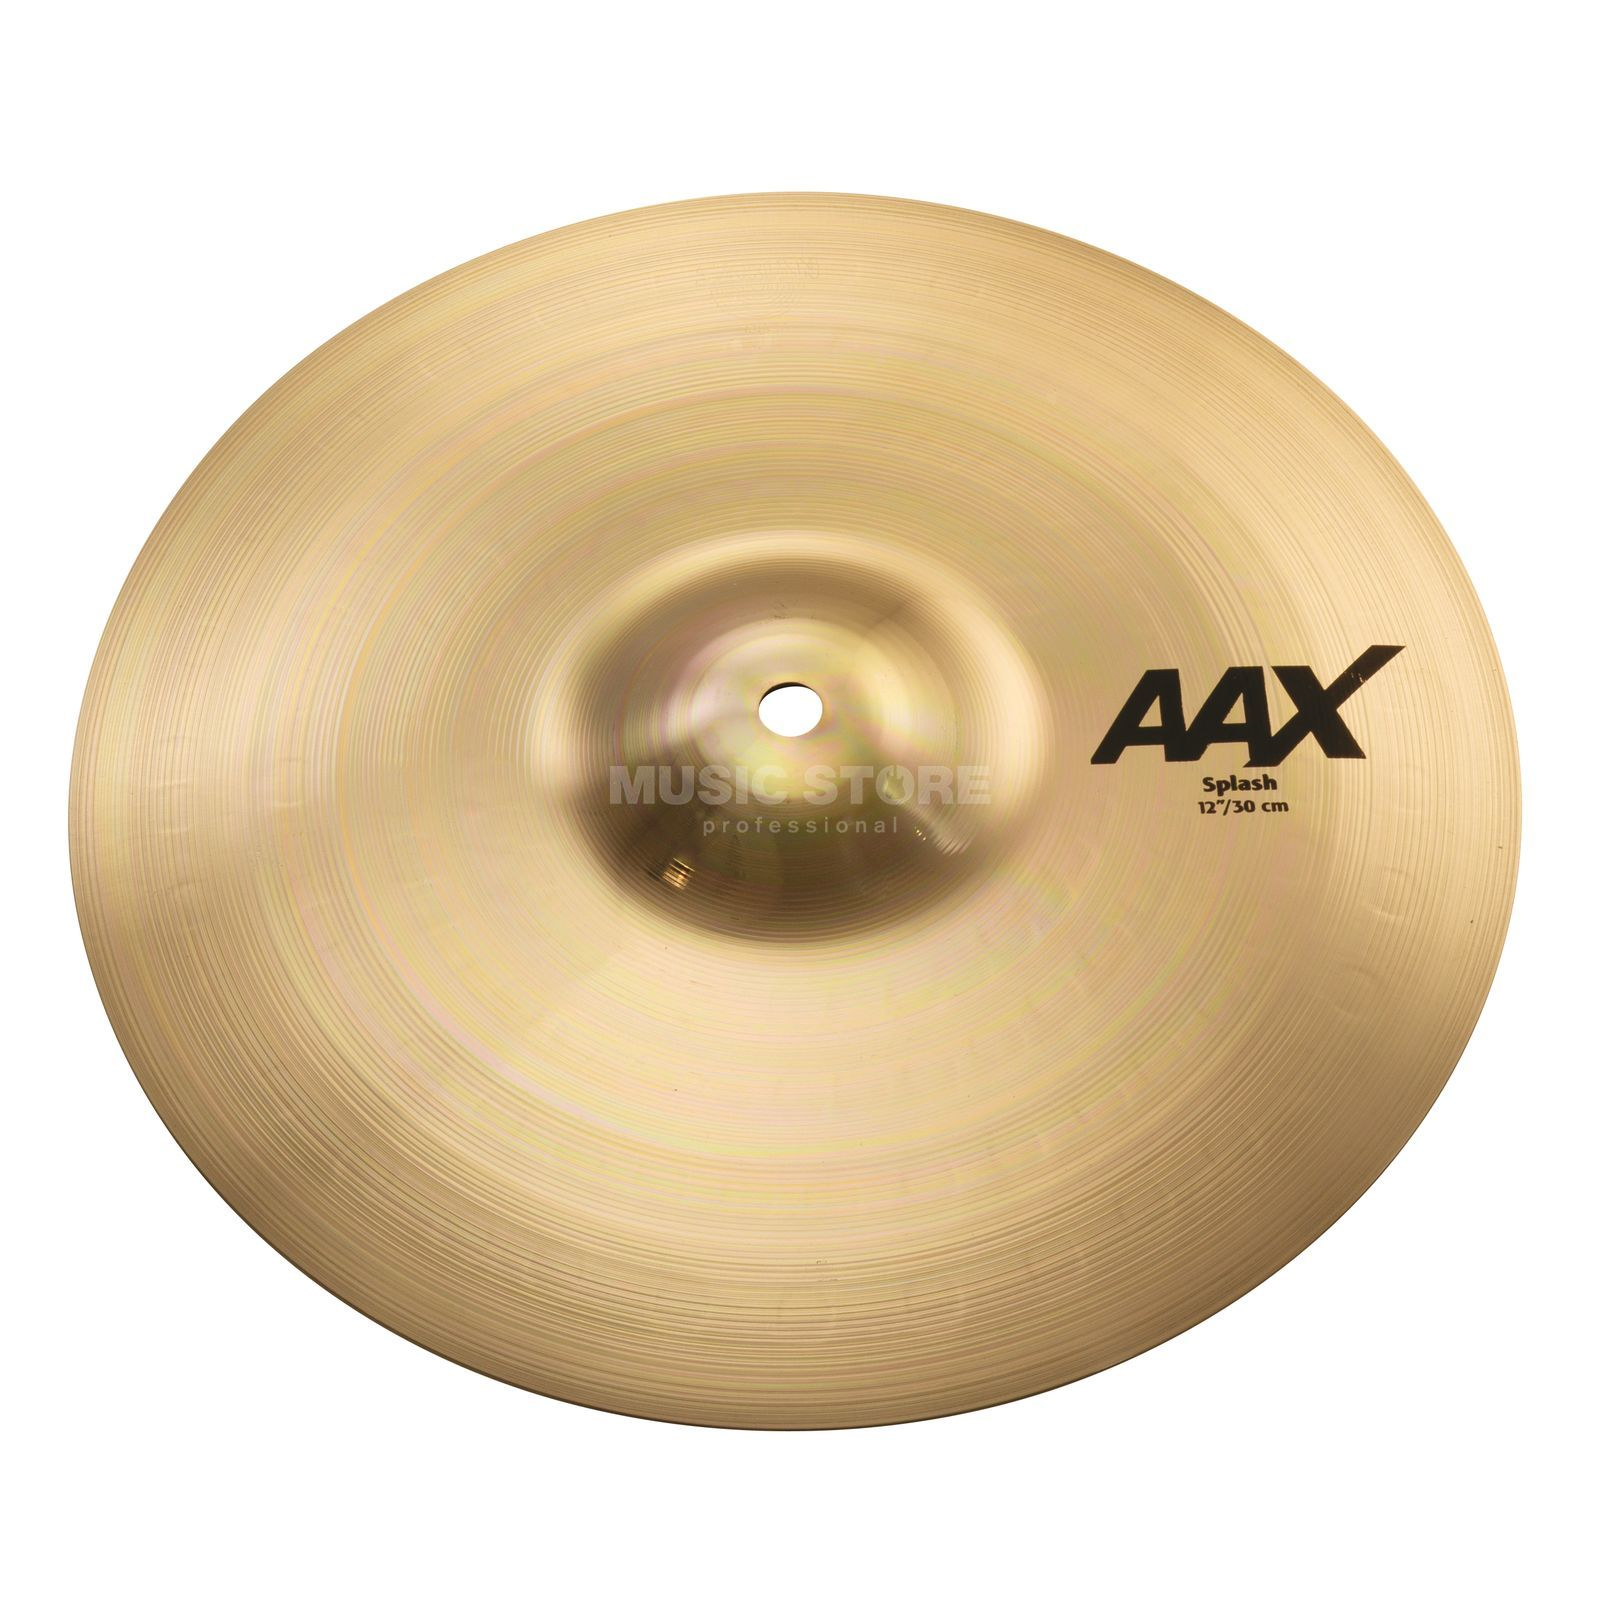 "Sabian AAX Splash 12"" Brilliant Finish Zdjęcie produktu"